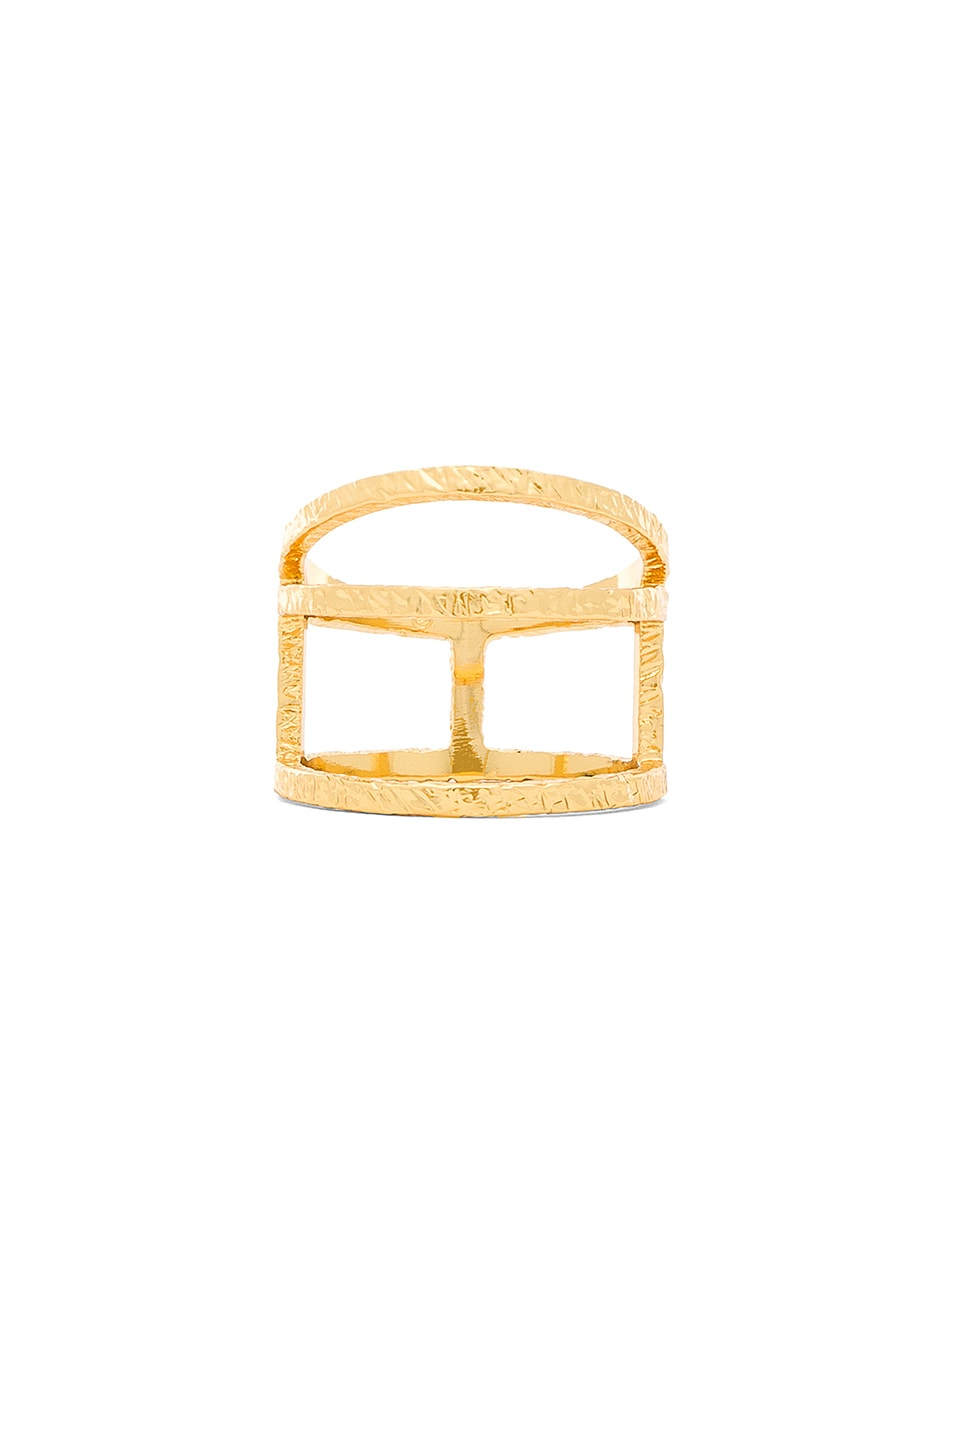 gorjana Paloma Ring in Gold